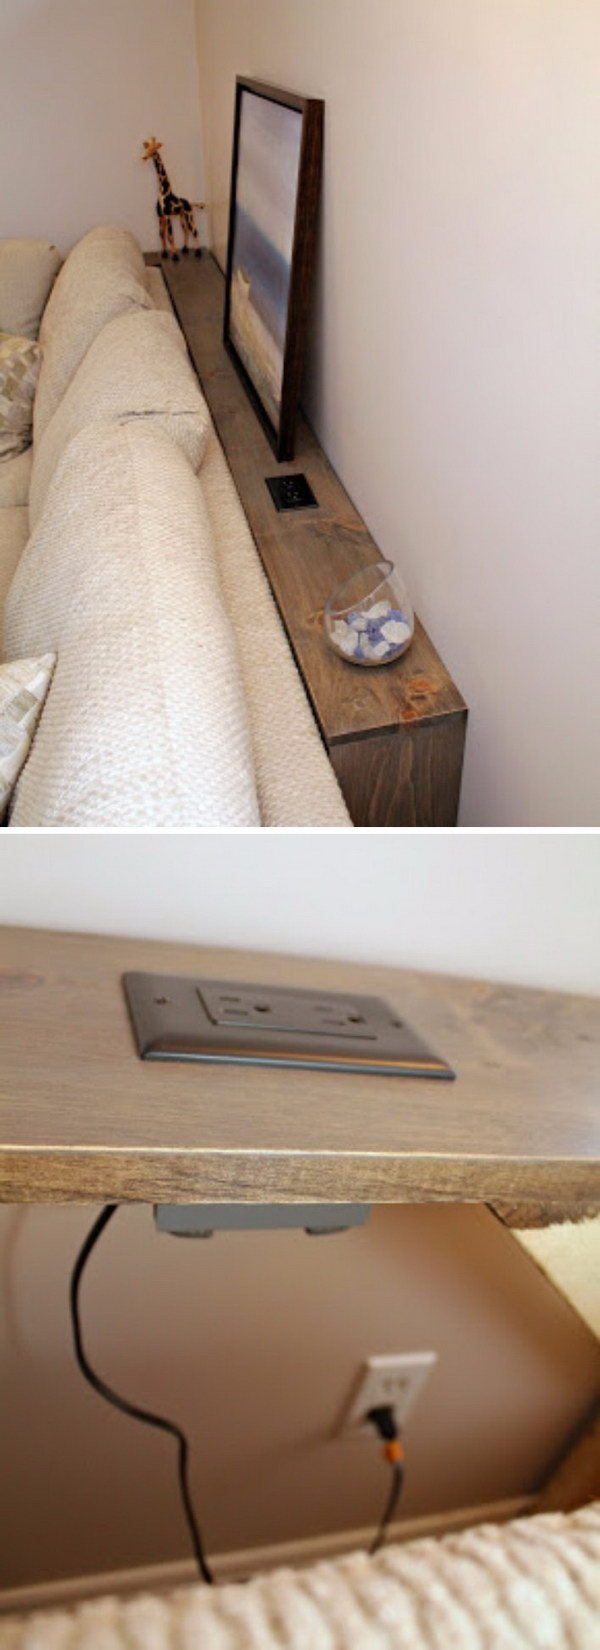 behind the sofa table double bed argos 20 easy diy console and ideas hative this little wooden which is very accessible for everyone to make all about functionality its strategic placement